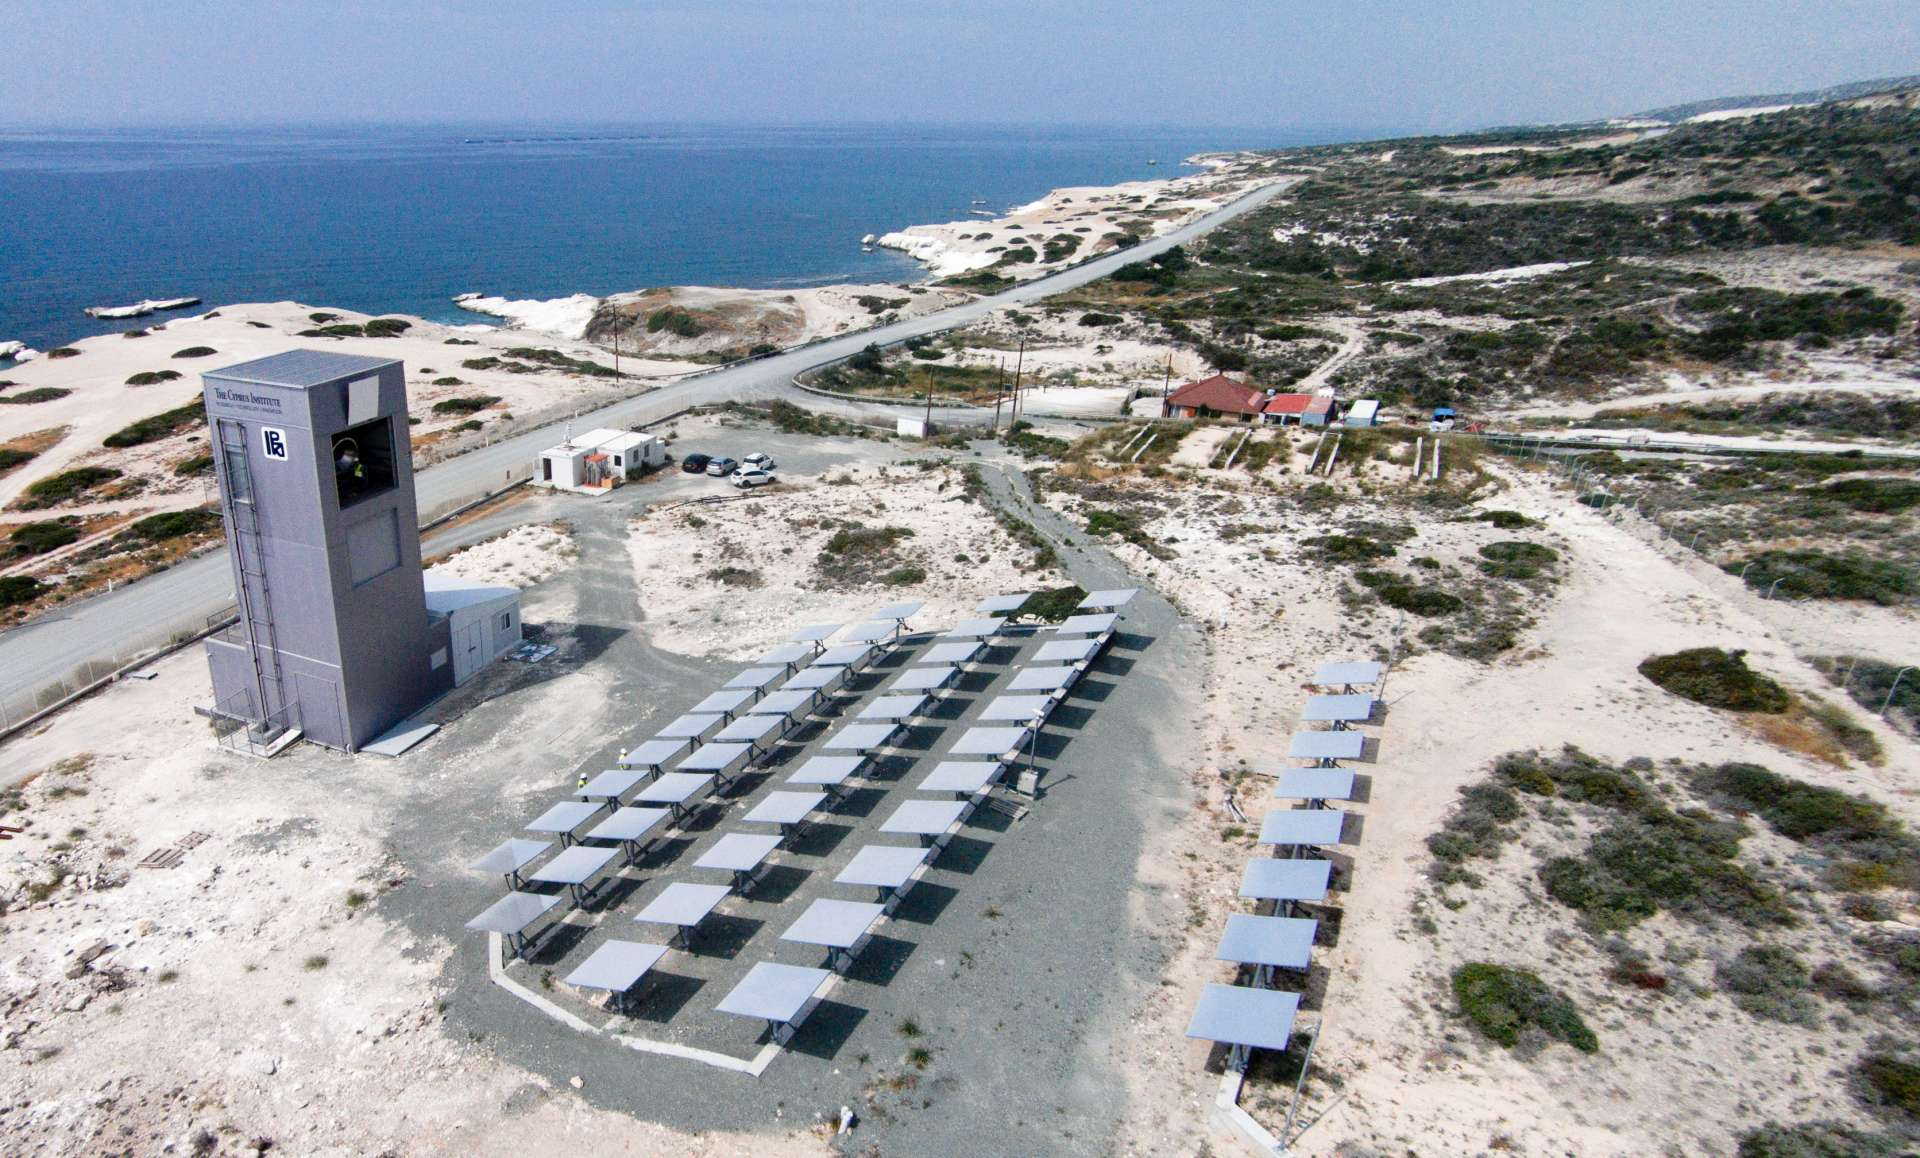 The Cyprus Institute secures multi-million Euro grant from the European Union for solar energy research